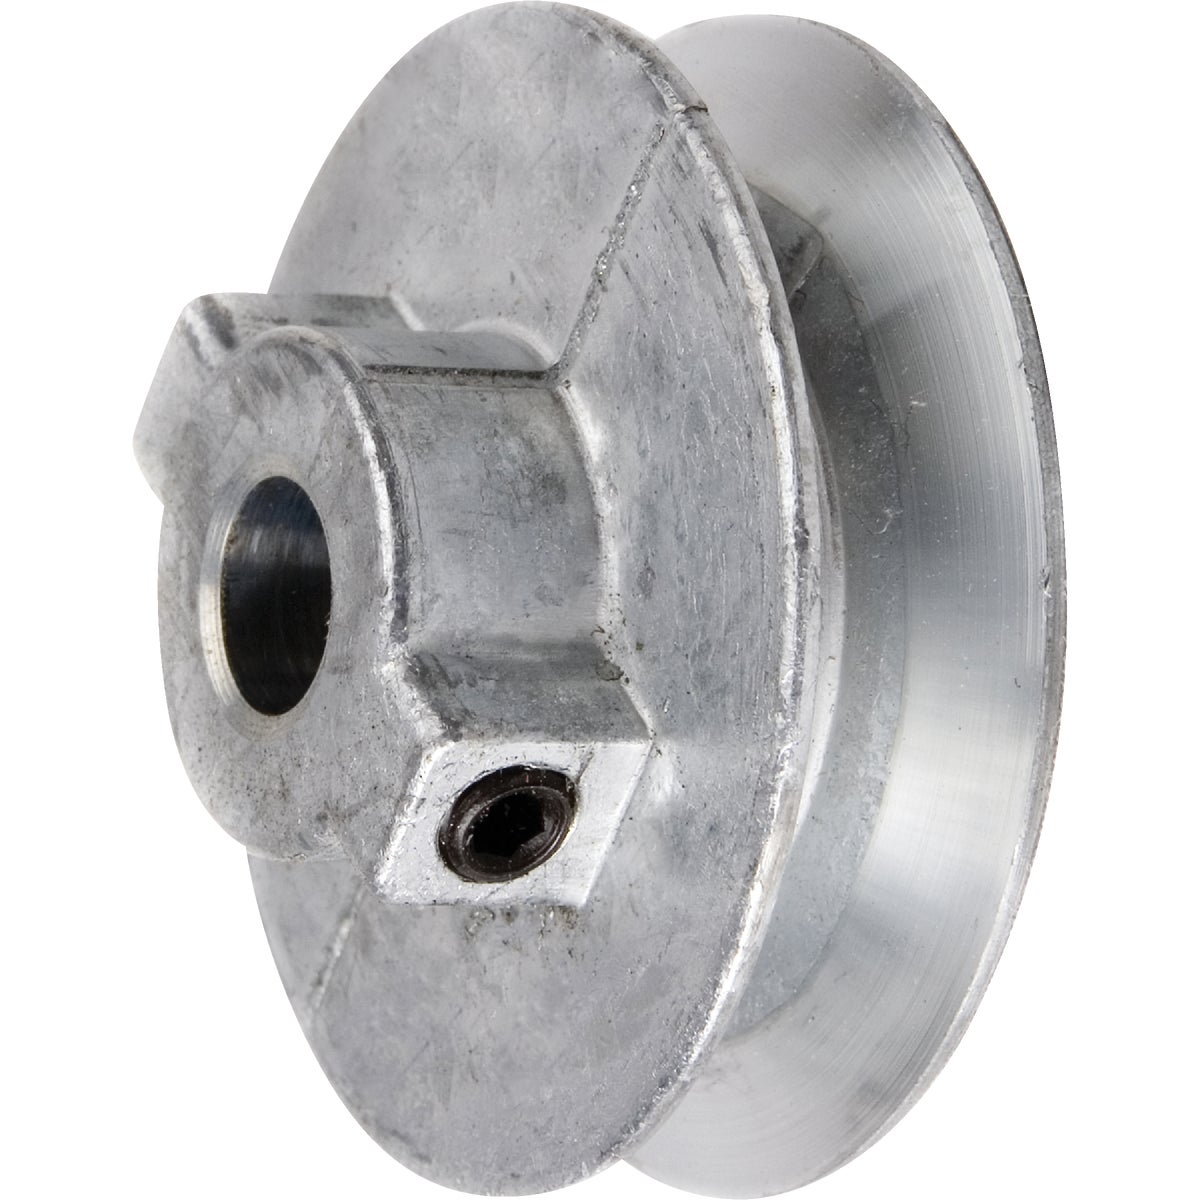 2-1/2X1/2 PULLEY - 250A5 by Chicago Die Casting